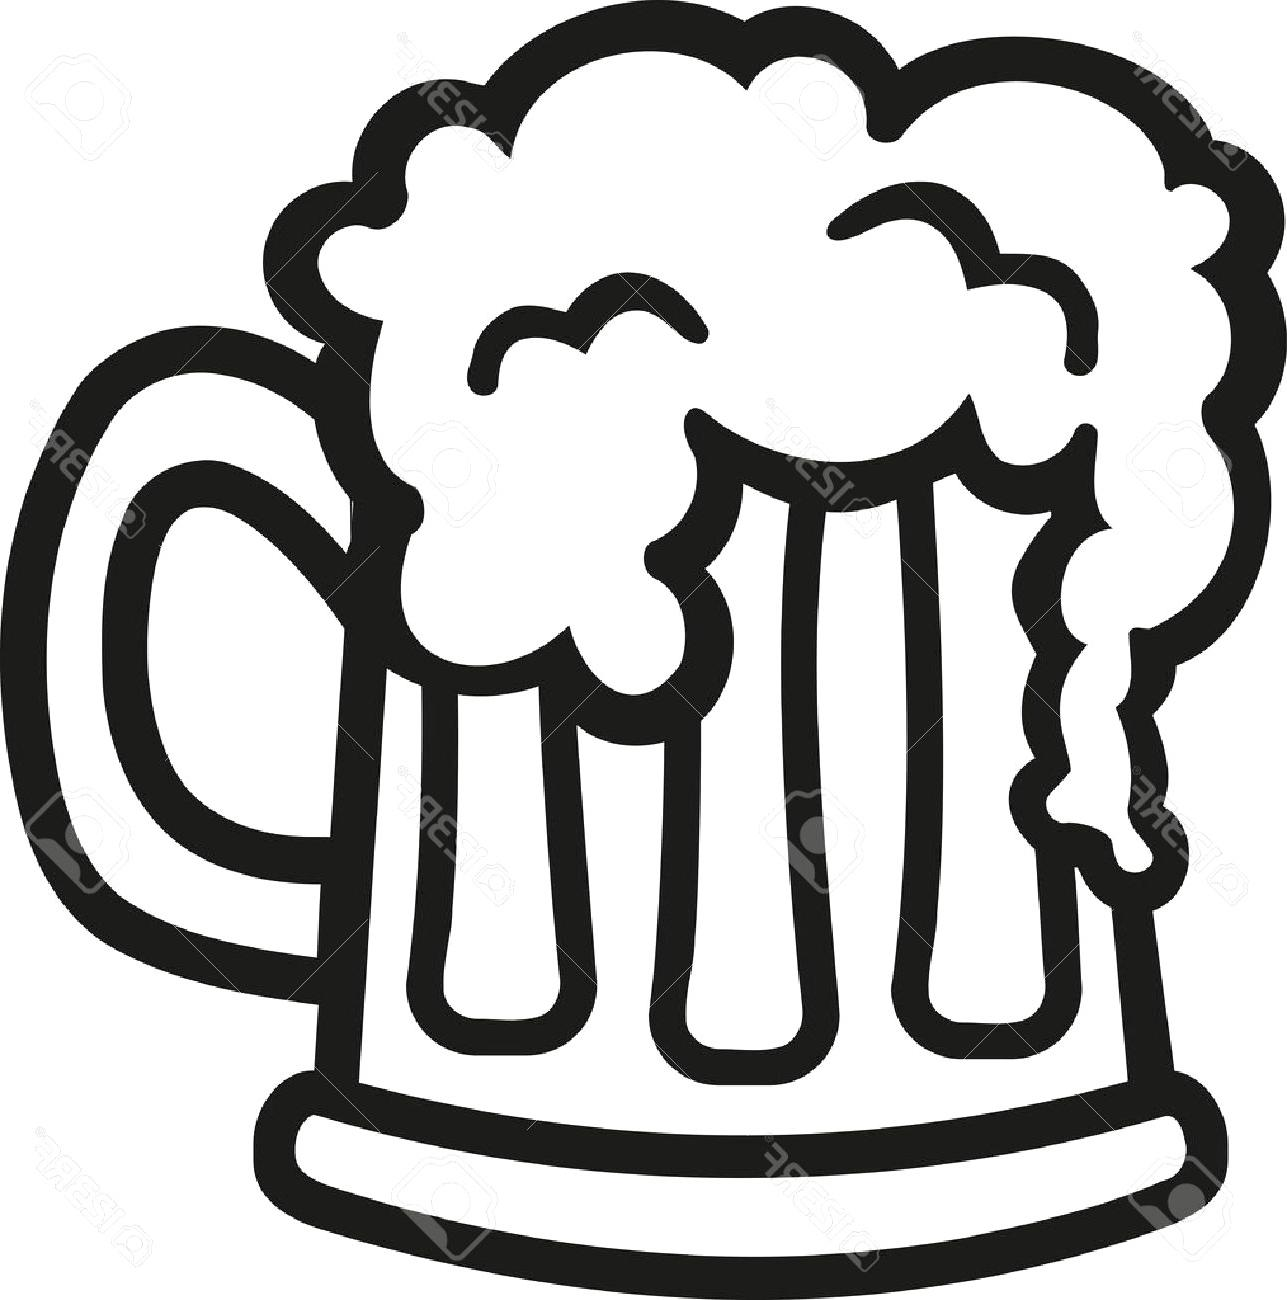 Beer stein clipart black and white svg free Top Beer Glass Clip Art Black And White Cdr » Free Vector Art ... svg free